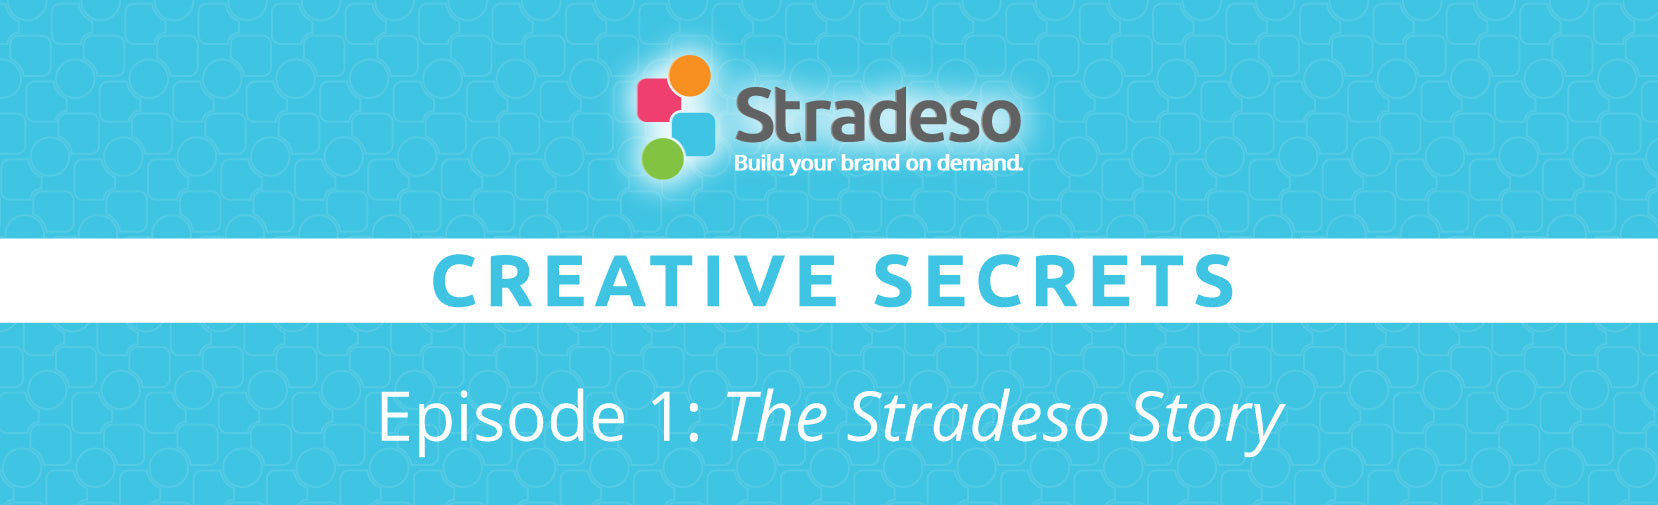 Episode 1: The Stradeso Story